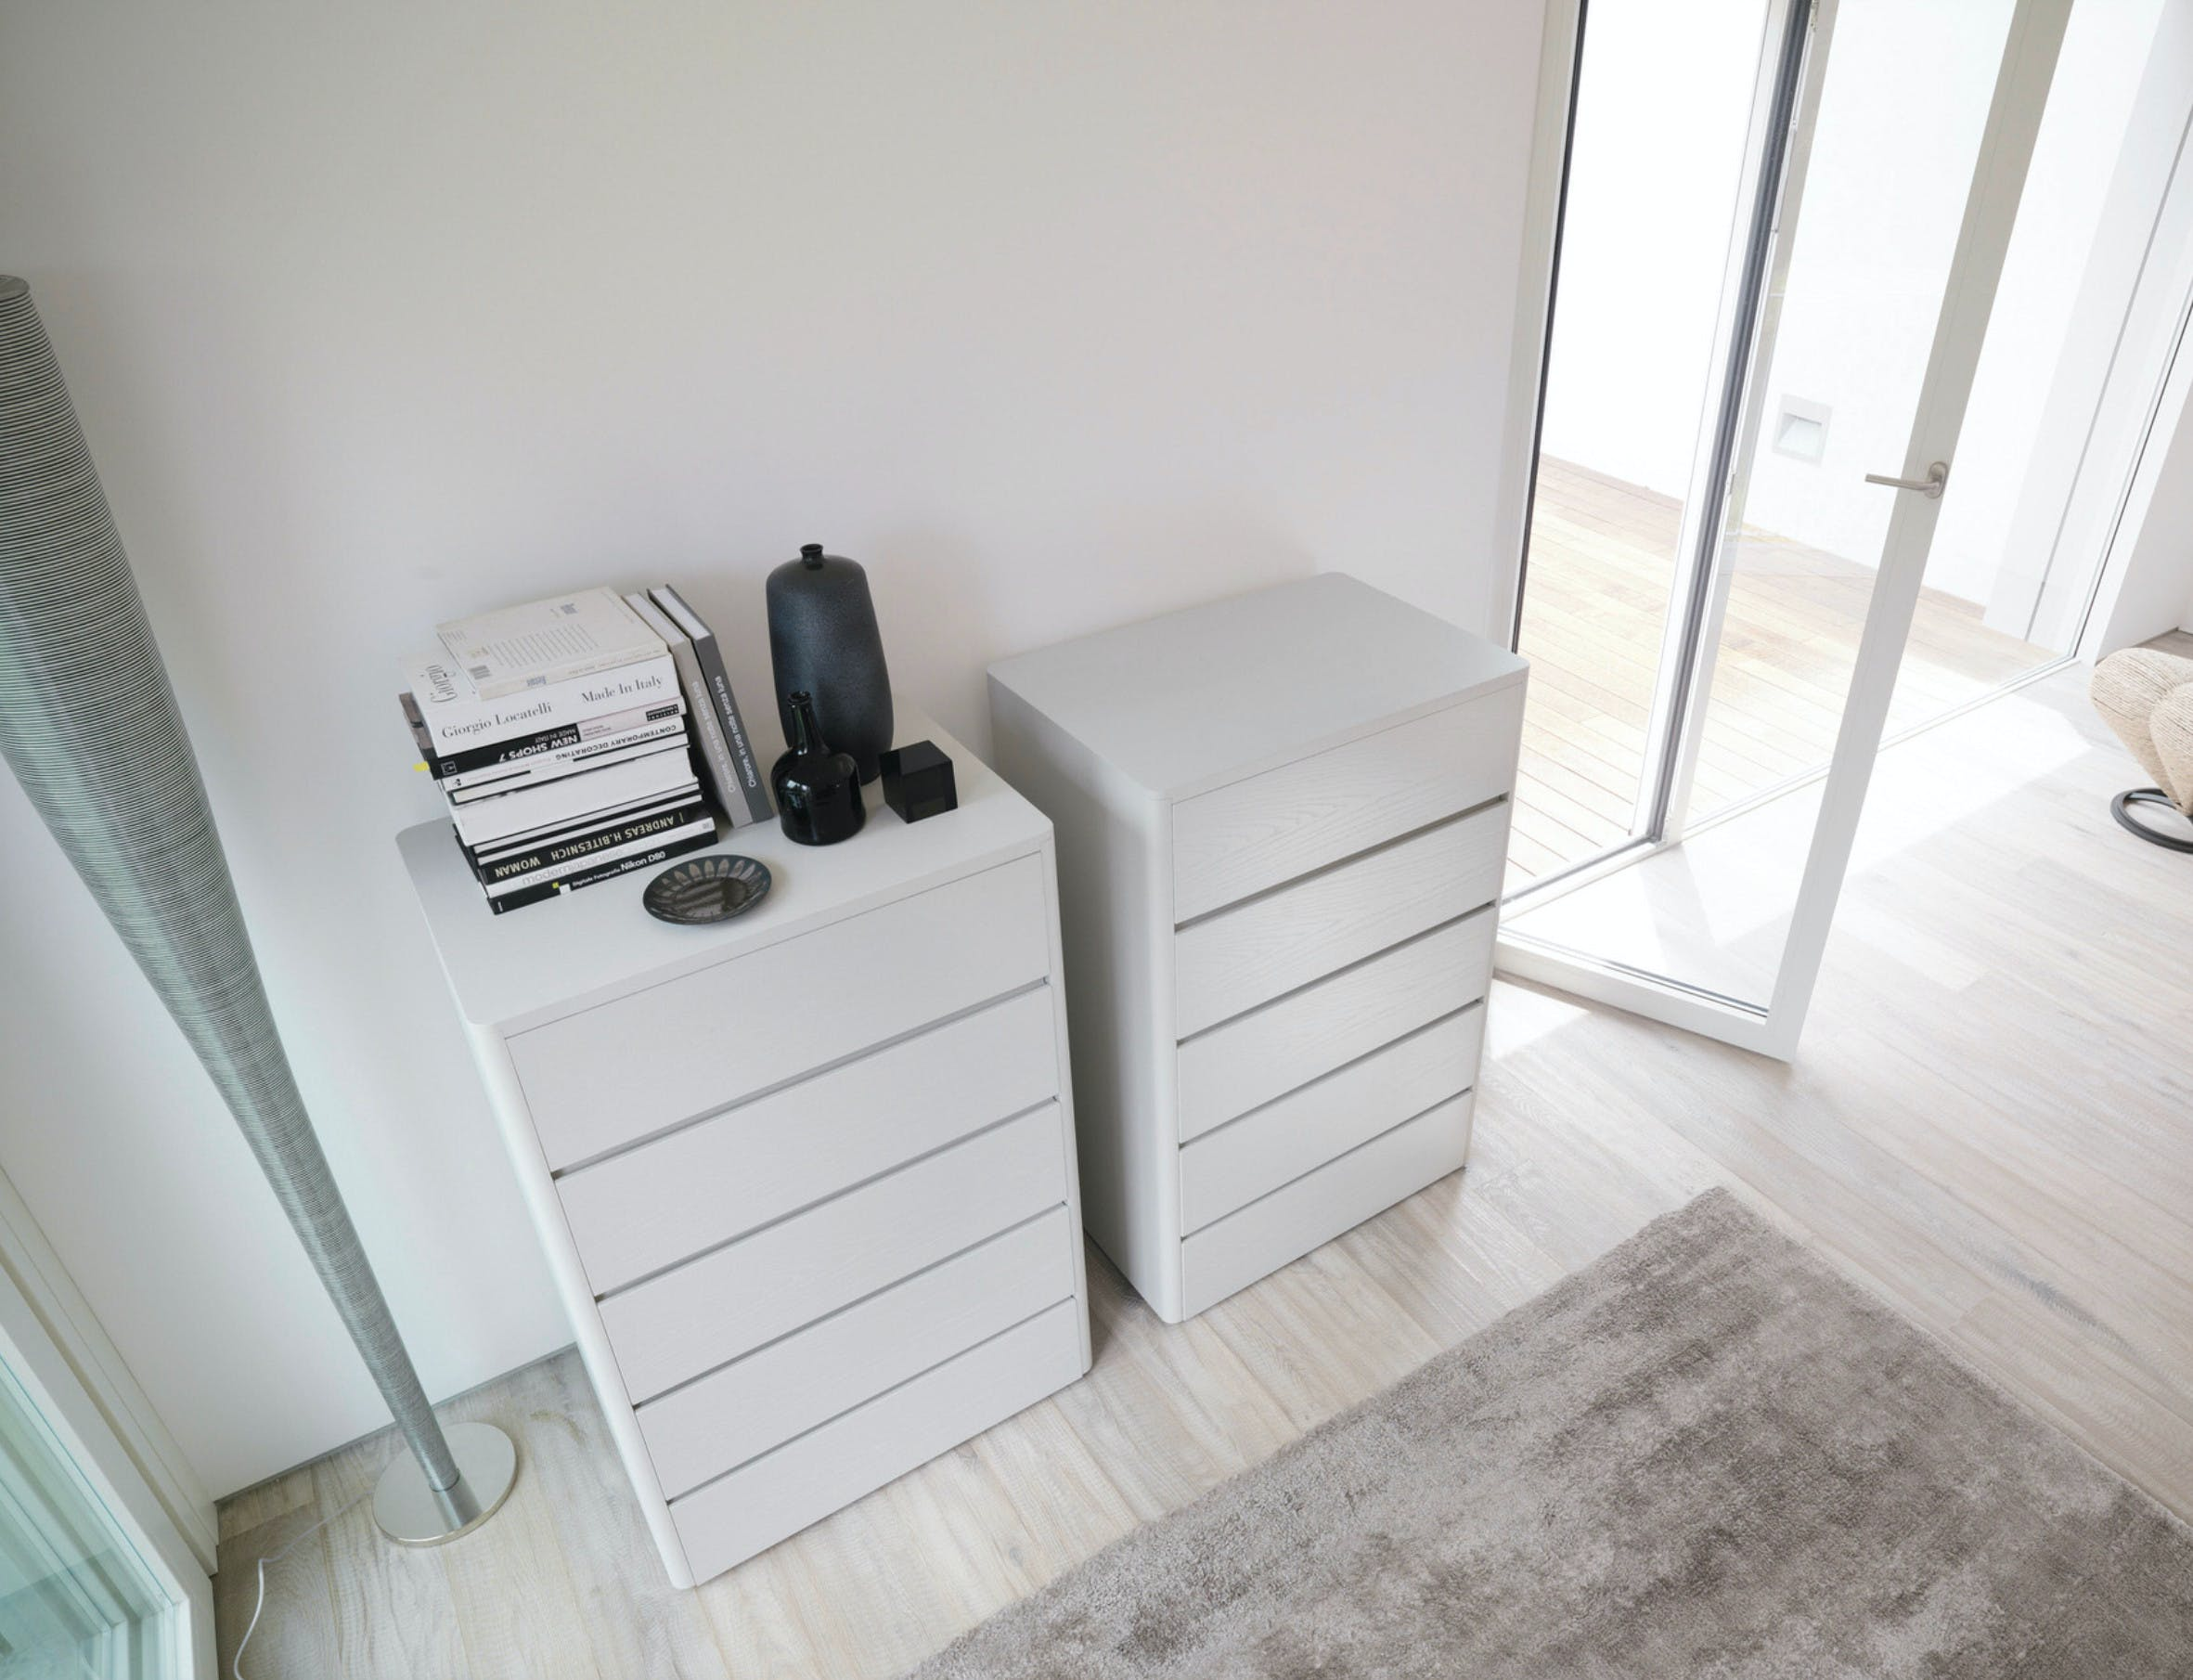 Caccaro Soft System Angle Haute Living